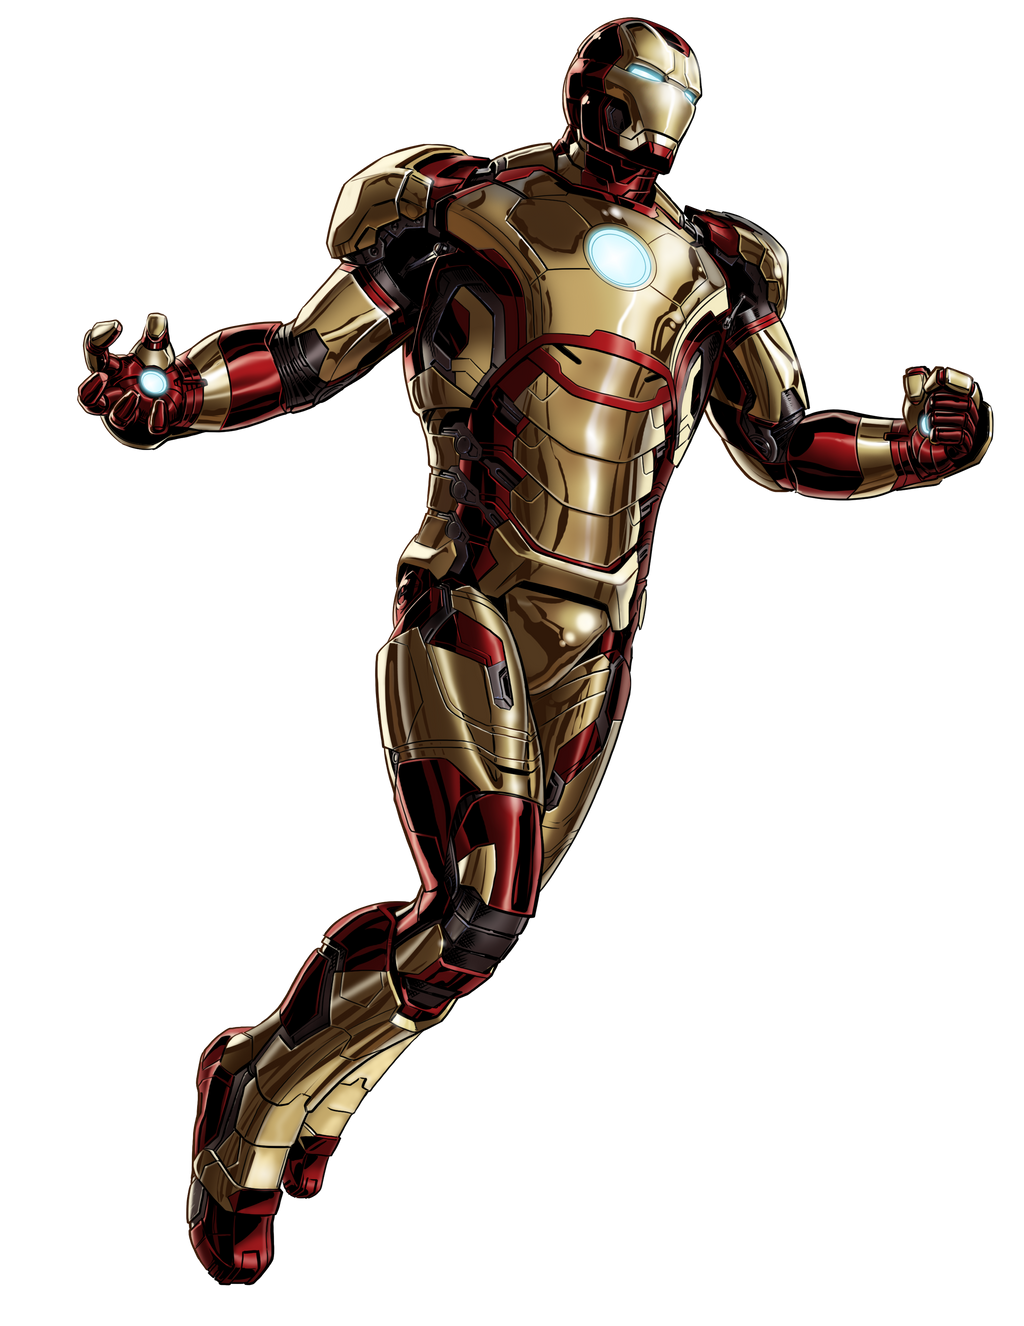 Marvel Avengers Alliance Ironman Mark 42 by ratatrampa87 ...